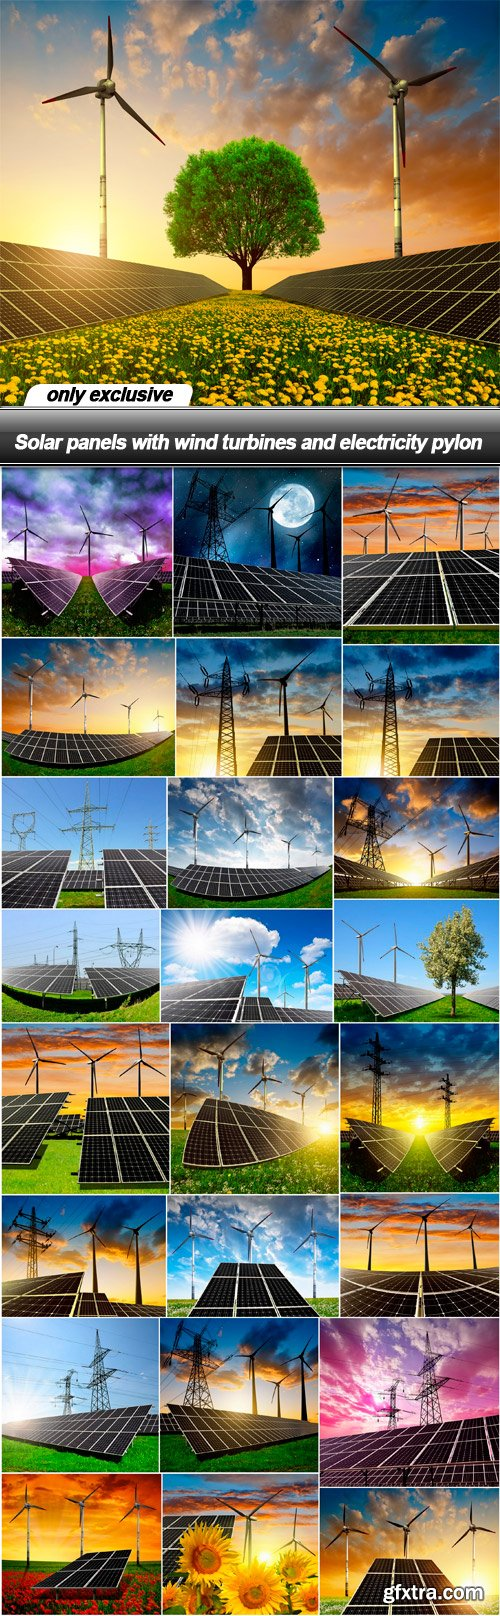 Solar panels with wind turbines and electricity pylon - 25 UHQ JPEG